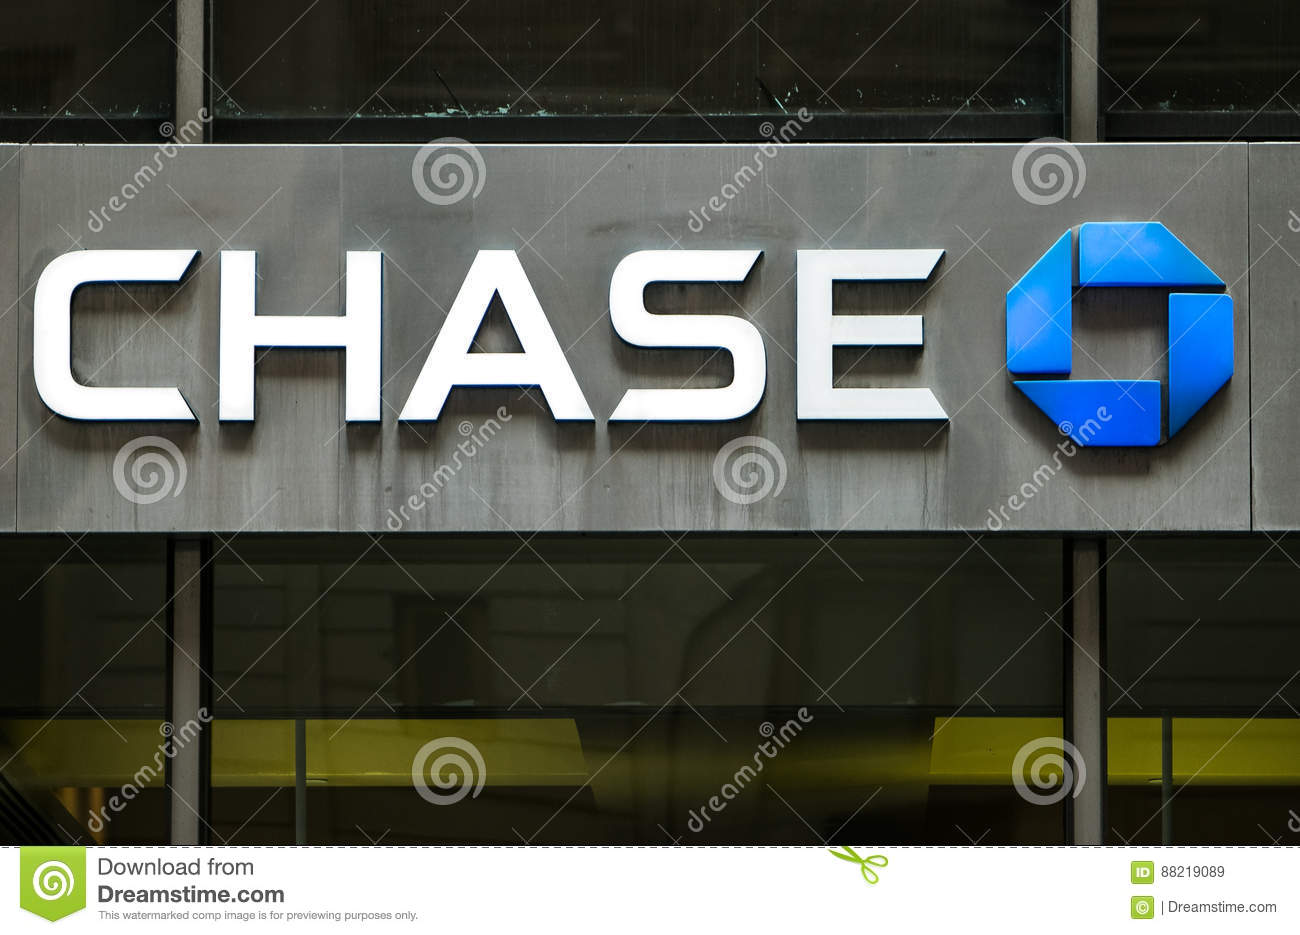 Chase Bank Branch Sign Editorial Stock Image Image Of Architecture